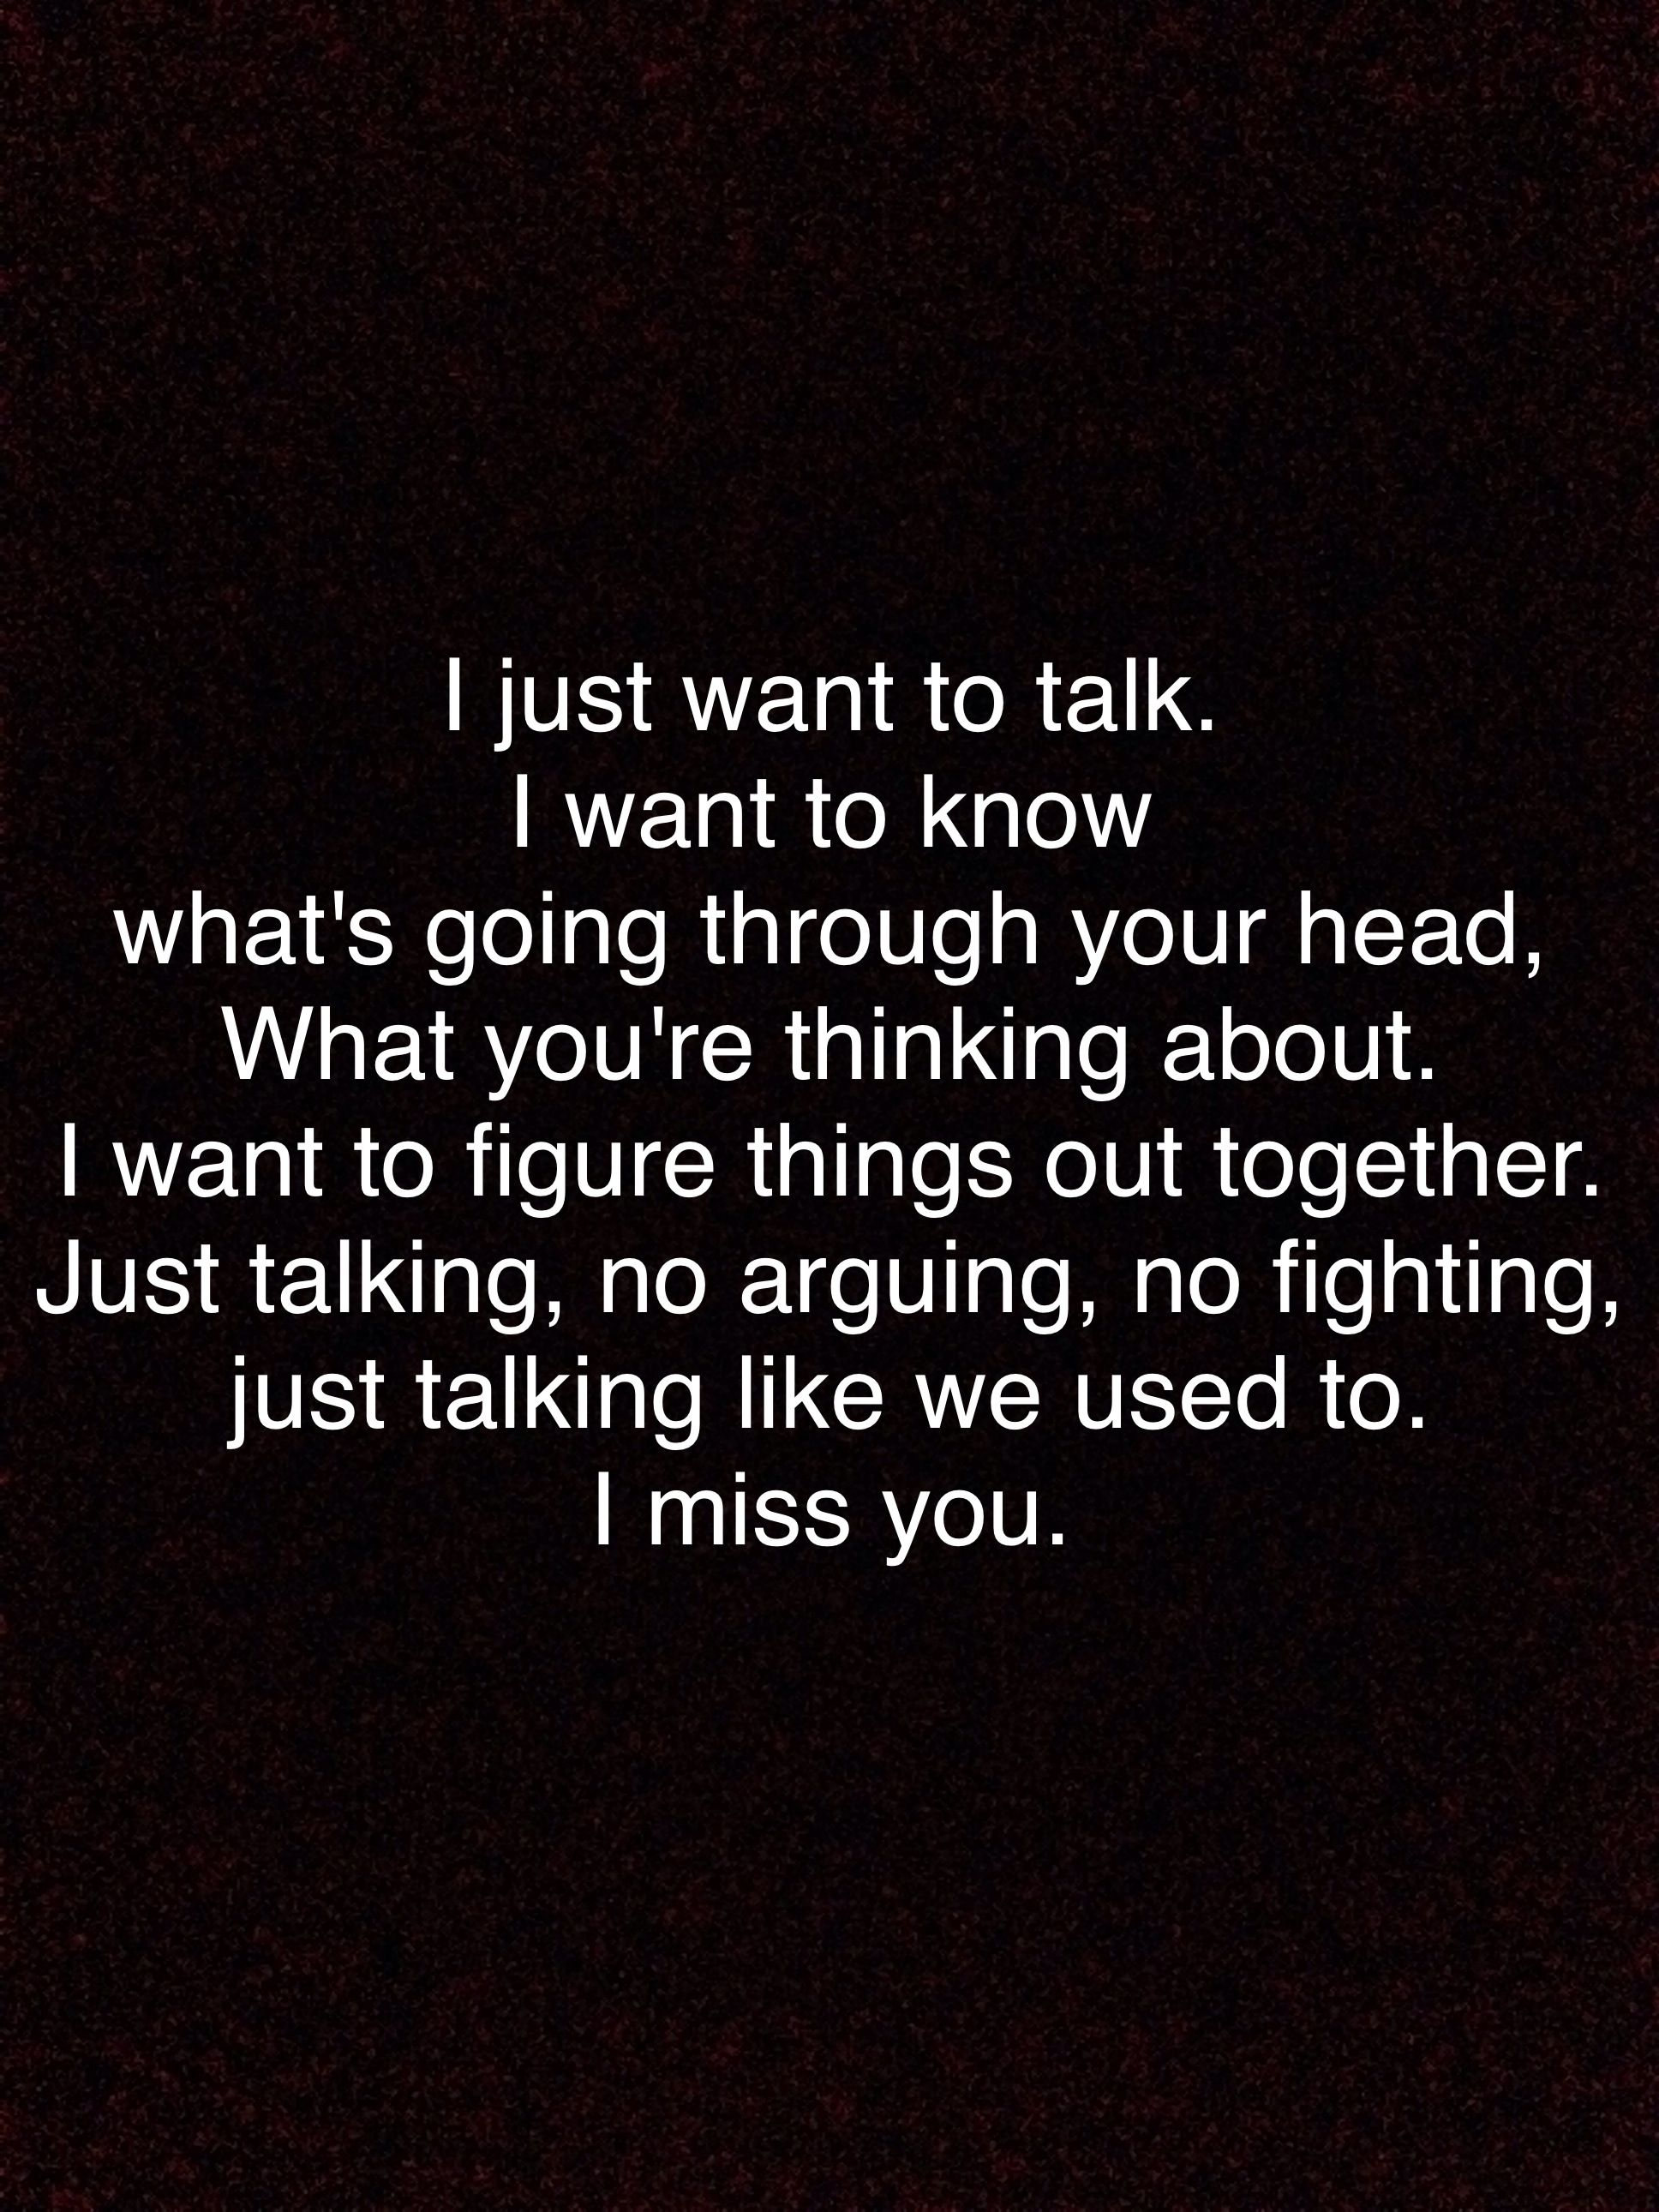 I know you need space, but I really miss you :( | Sayings ...